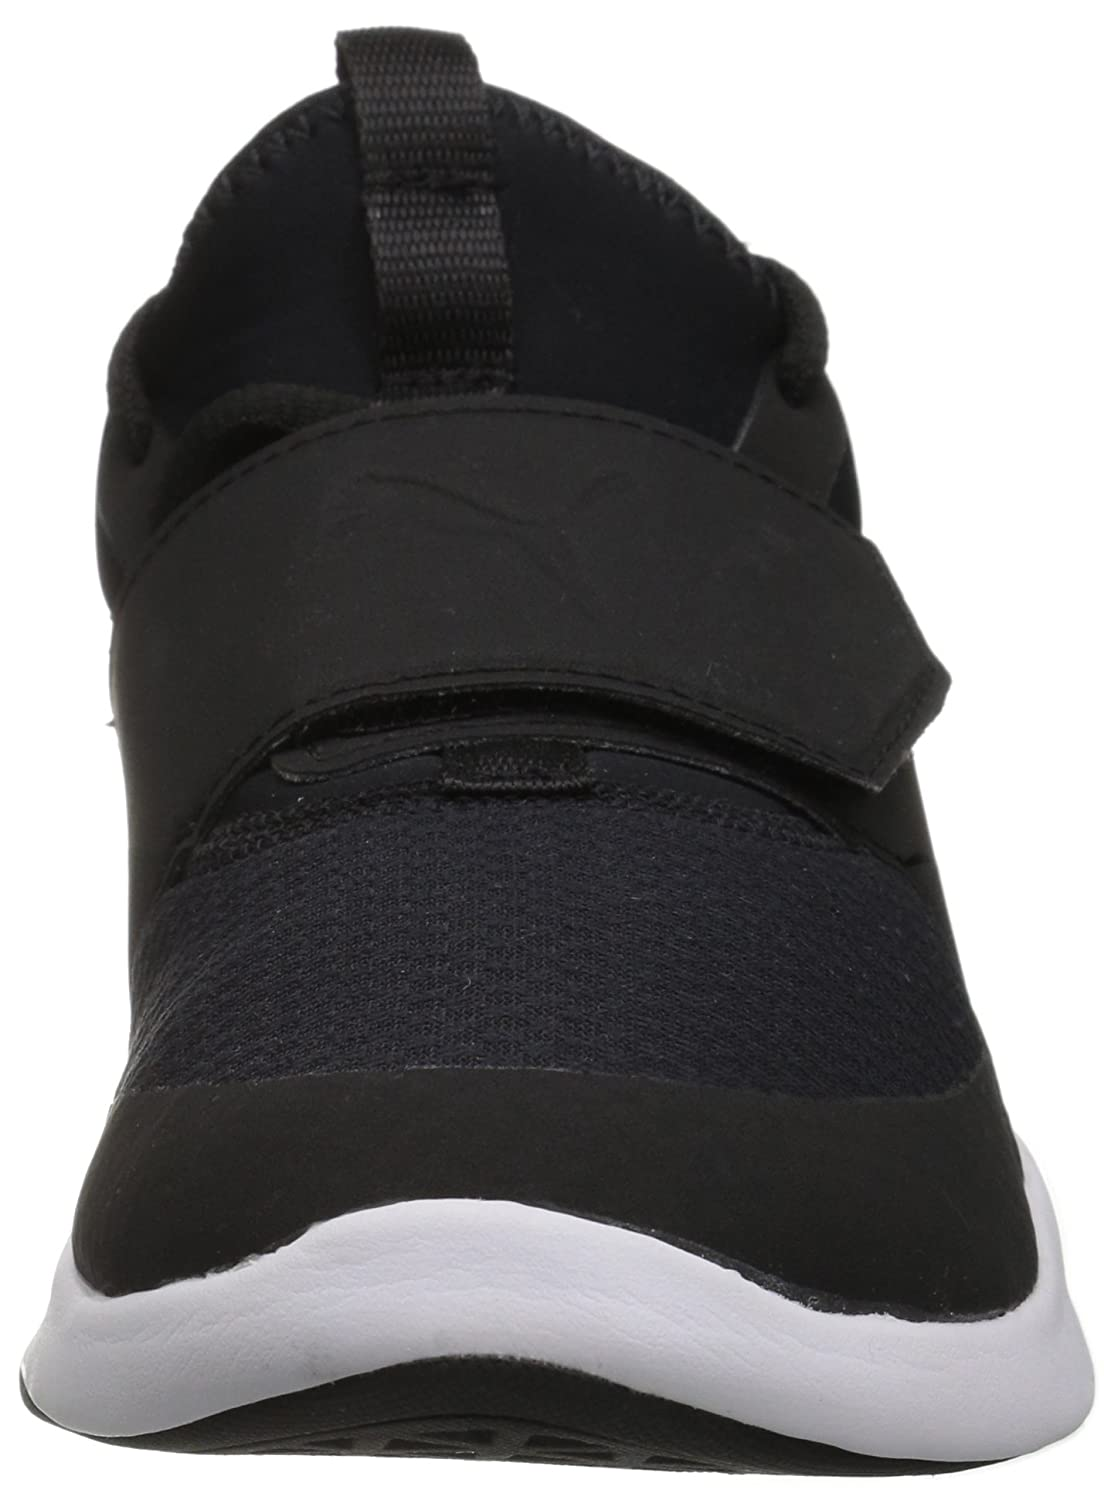 Puma Kids Dare Trainer Sneaker Buy Online At Low Prices In India D Island Shoes Casual Black